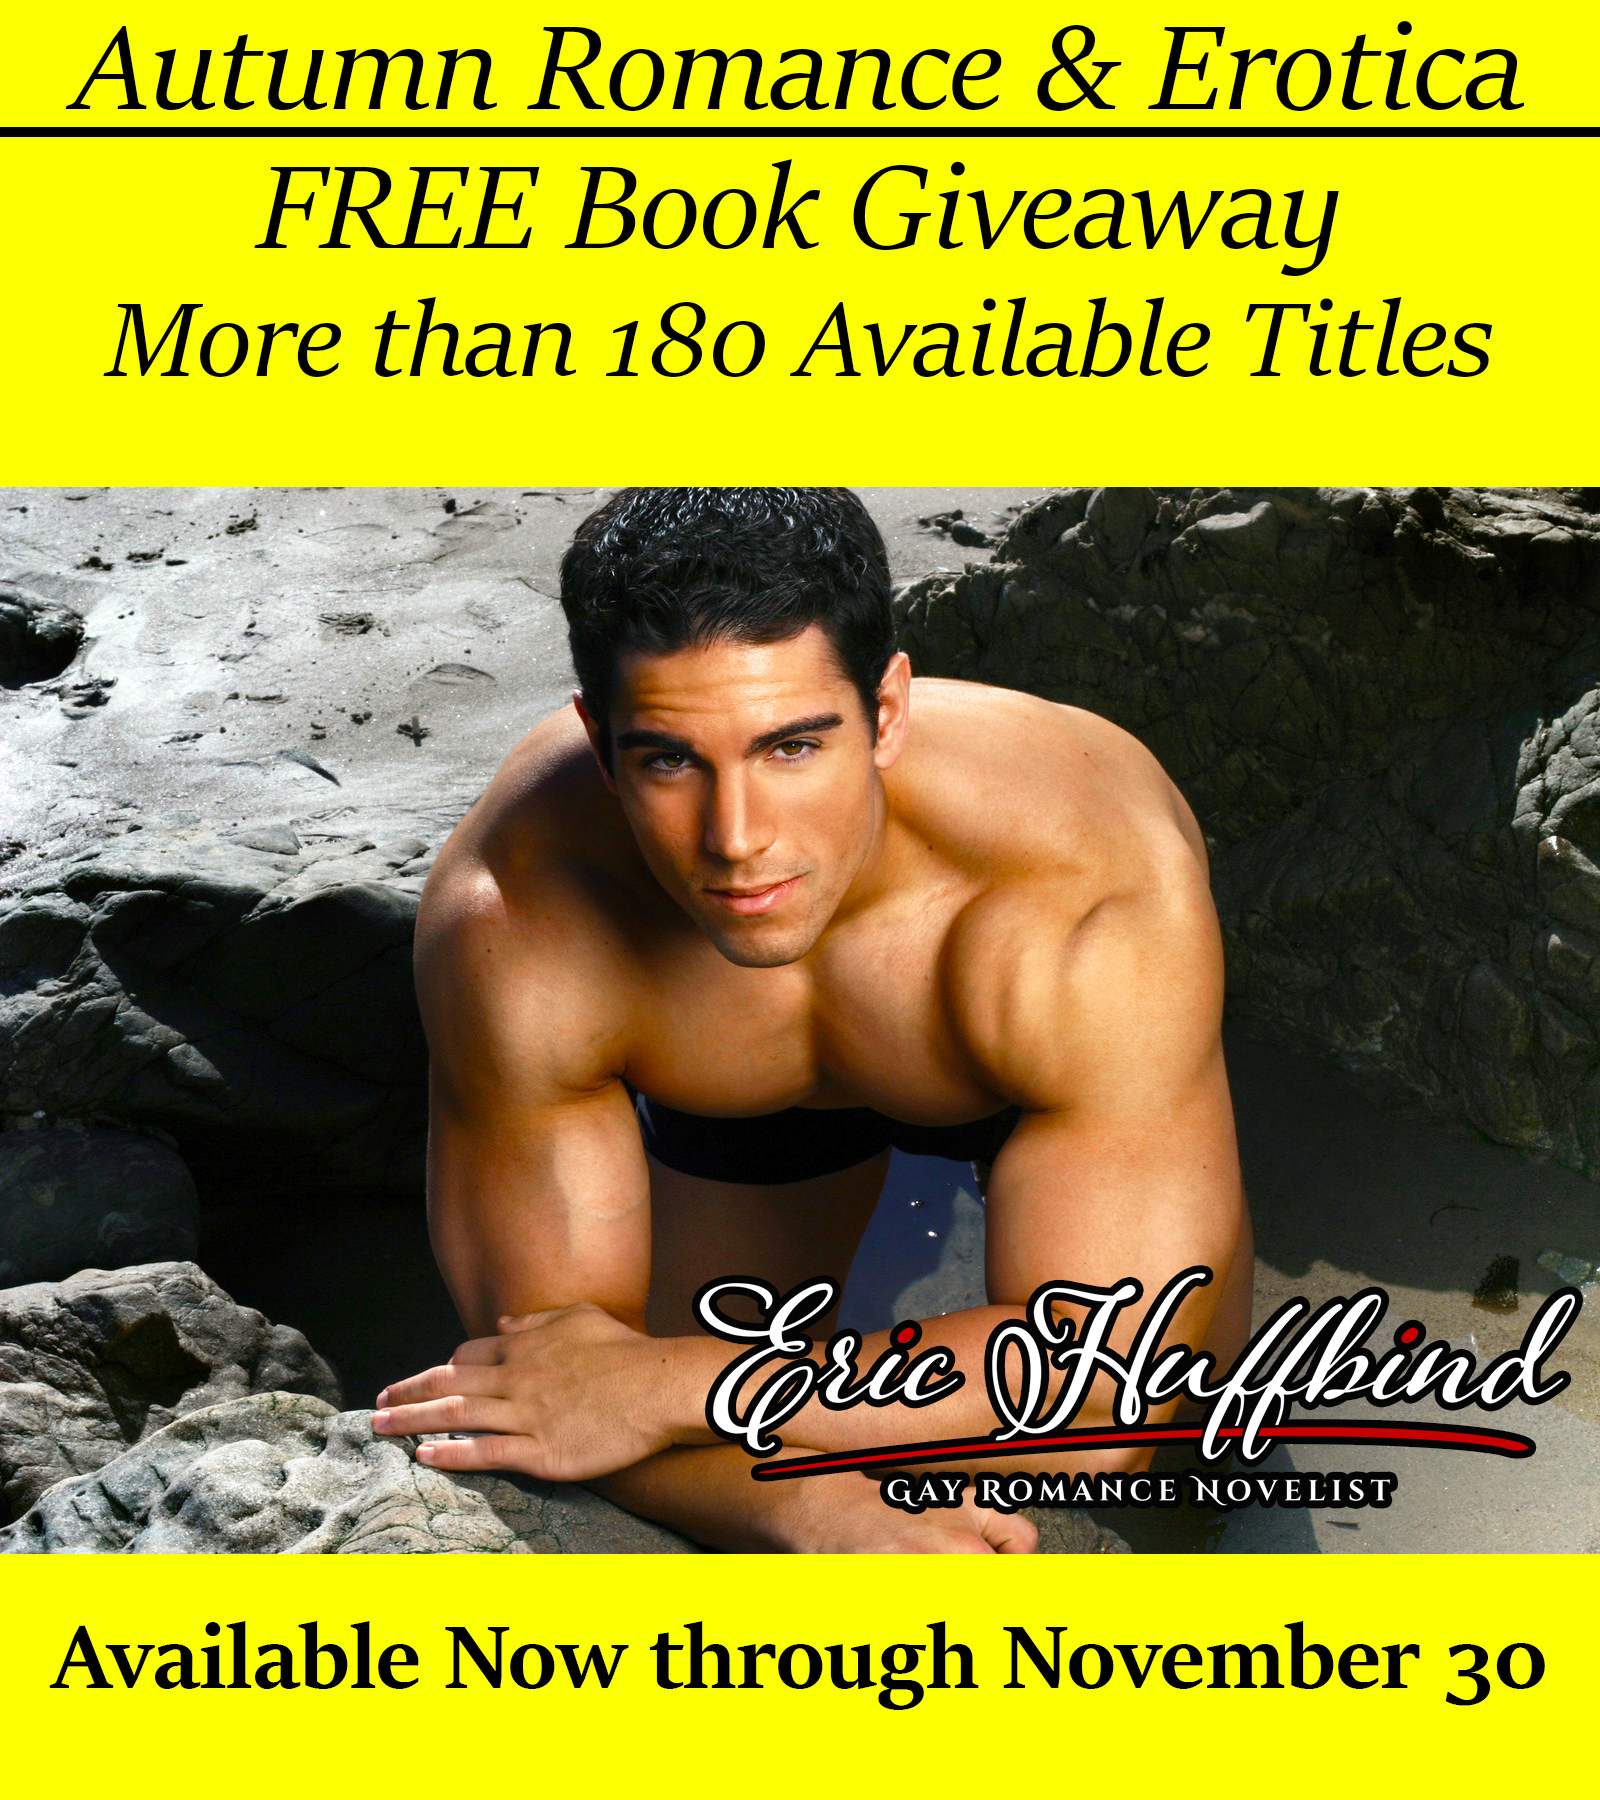 Autumn Romance & Erotica FREE Book Giveaway